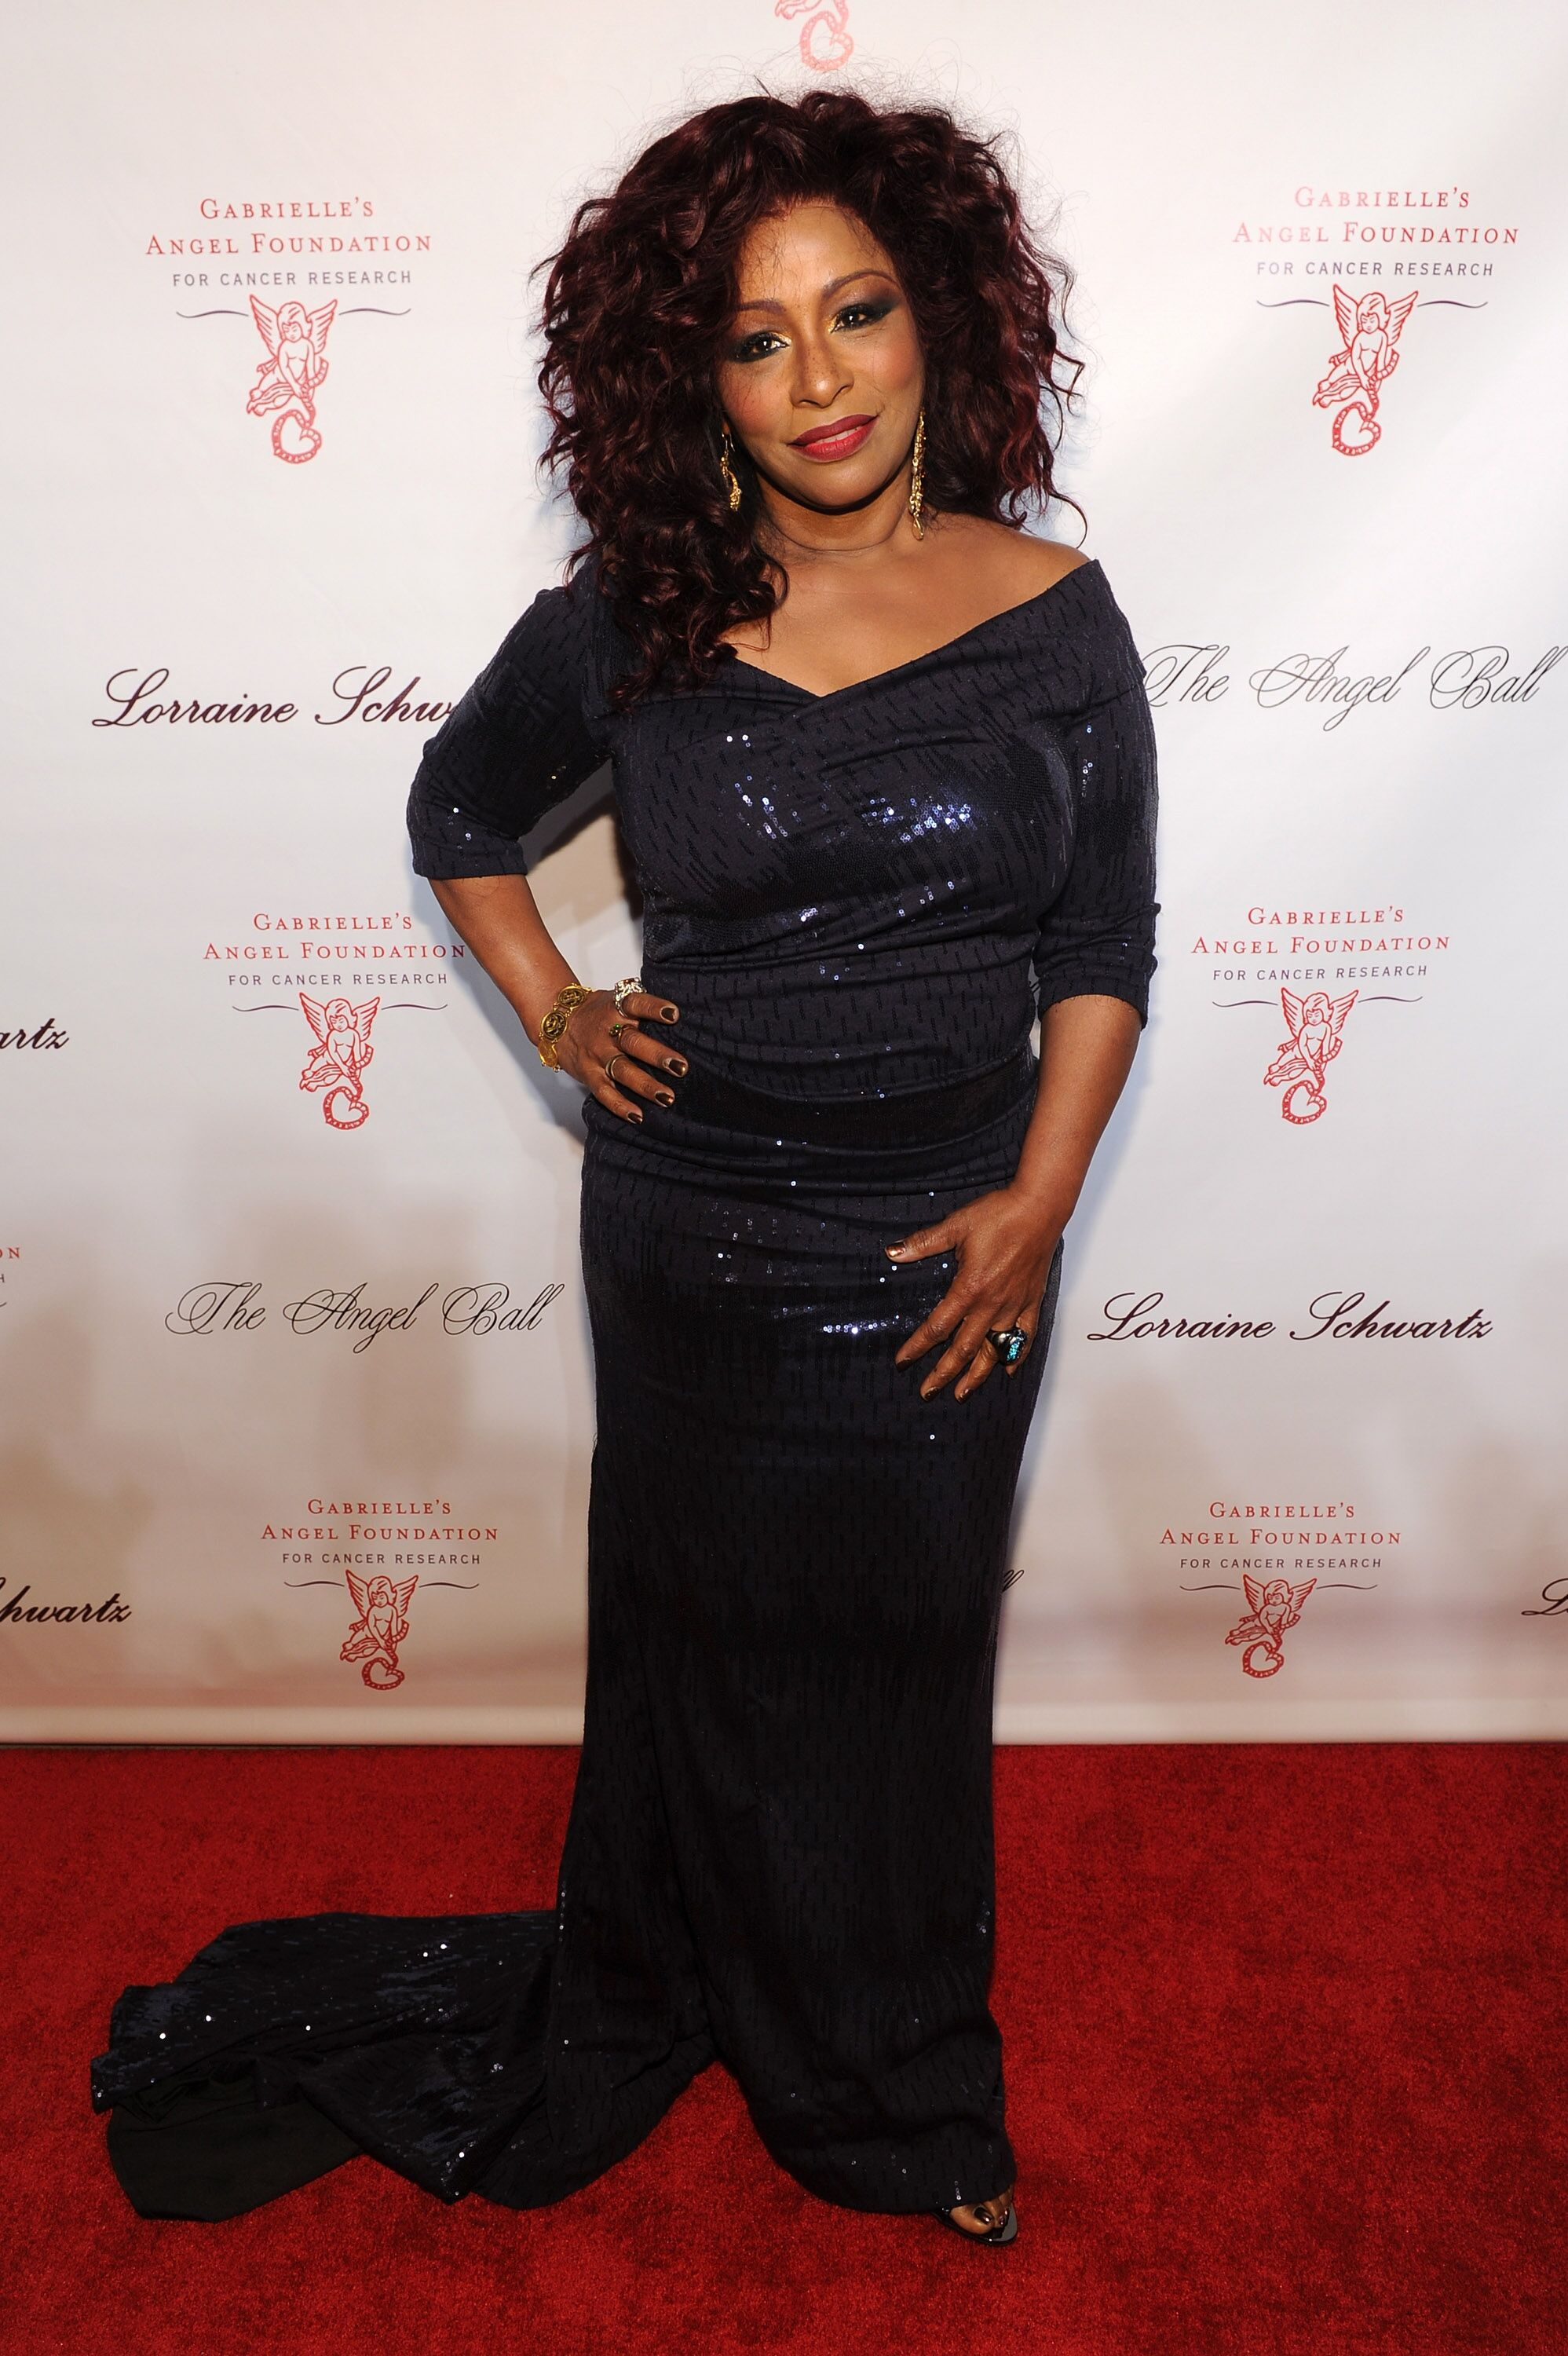 Musician Chaka Khan attends Gabrielle's Angel Foundation Hosts Angel Ball 2013 at Cipriani Wall Street on October 29, 2013 | Photo: Getty Images